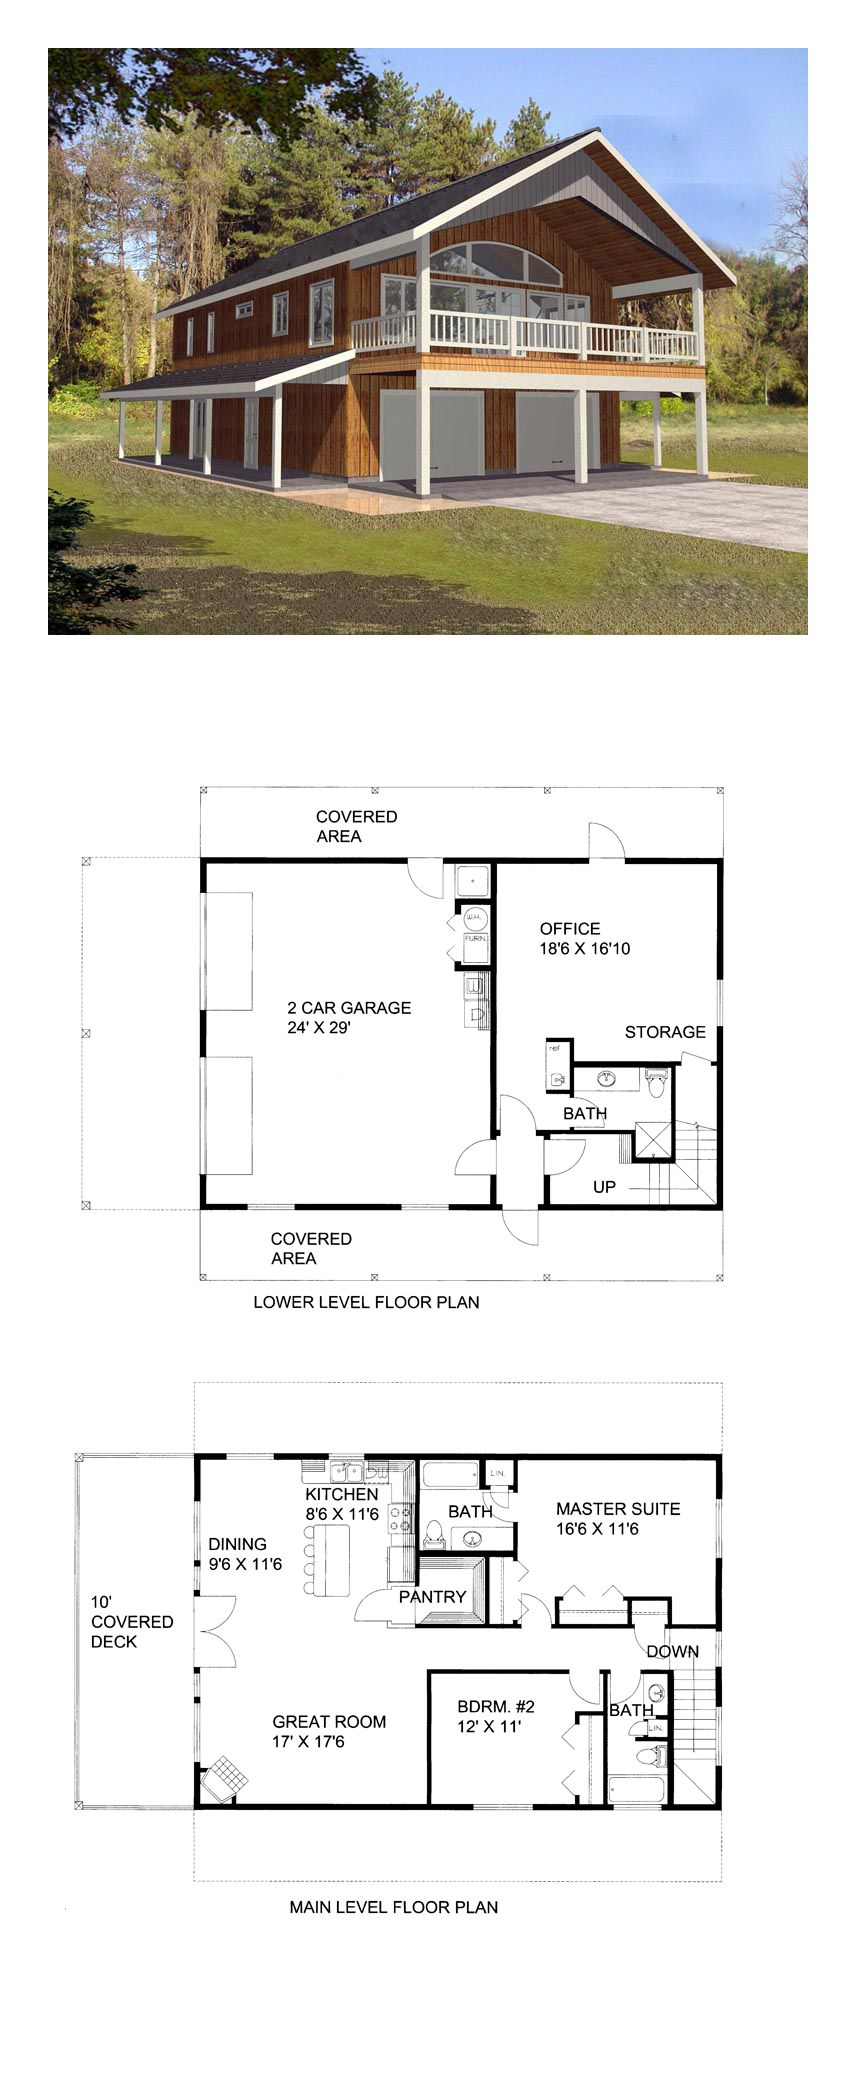 Garage apartment plan 85372 total living area 1901 sq for Small garage plans free